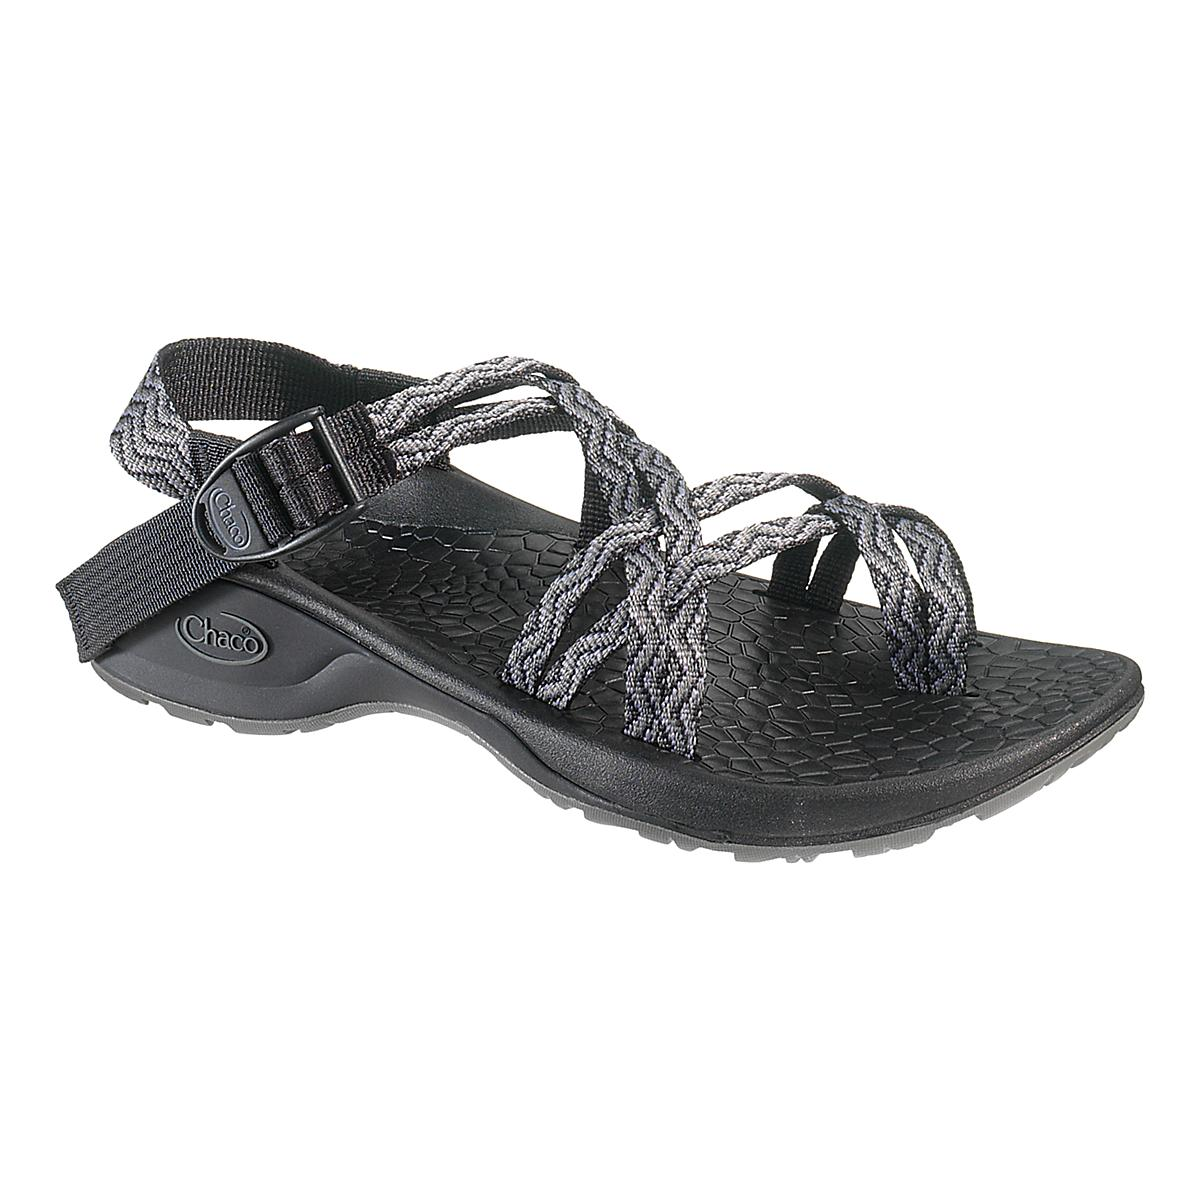 Women's Chaco�Updraft Ecotread X2